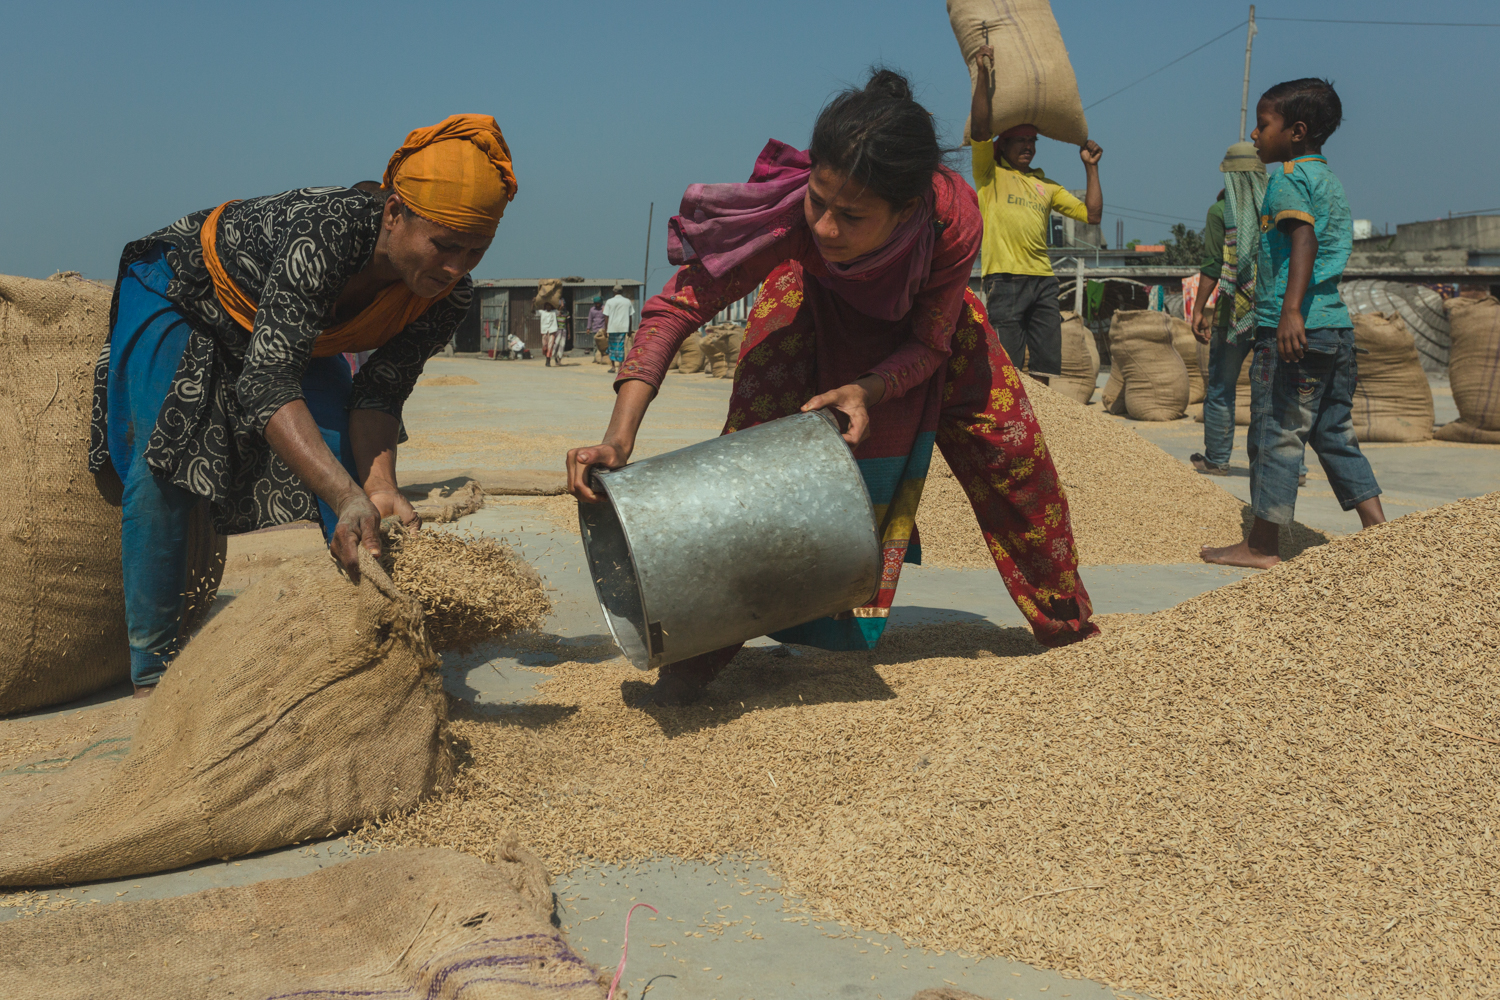 Women filling hessian bags with rice at Dhaka, Bangladesh Dhaka, Bangladesh Rice Mills.